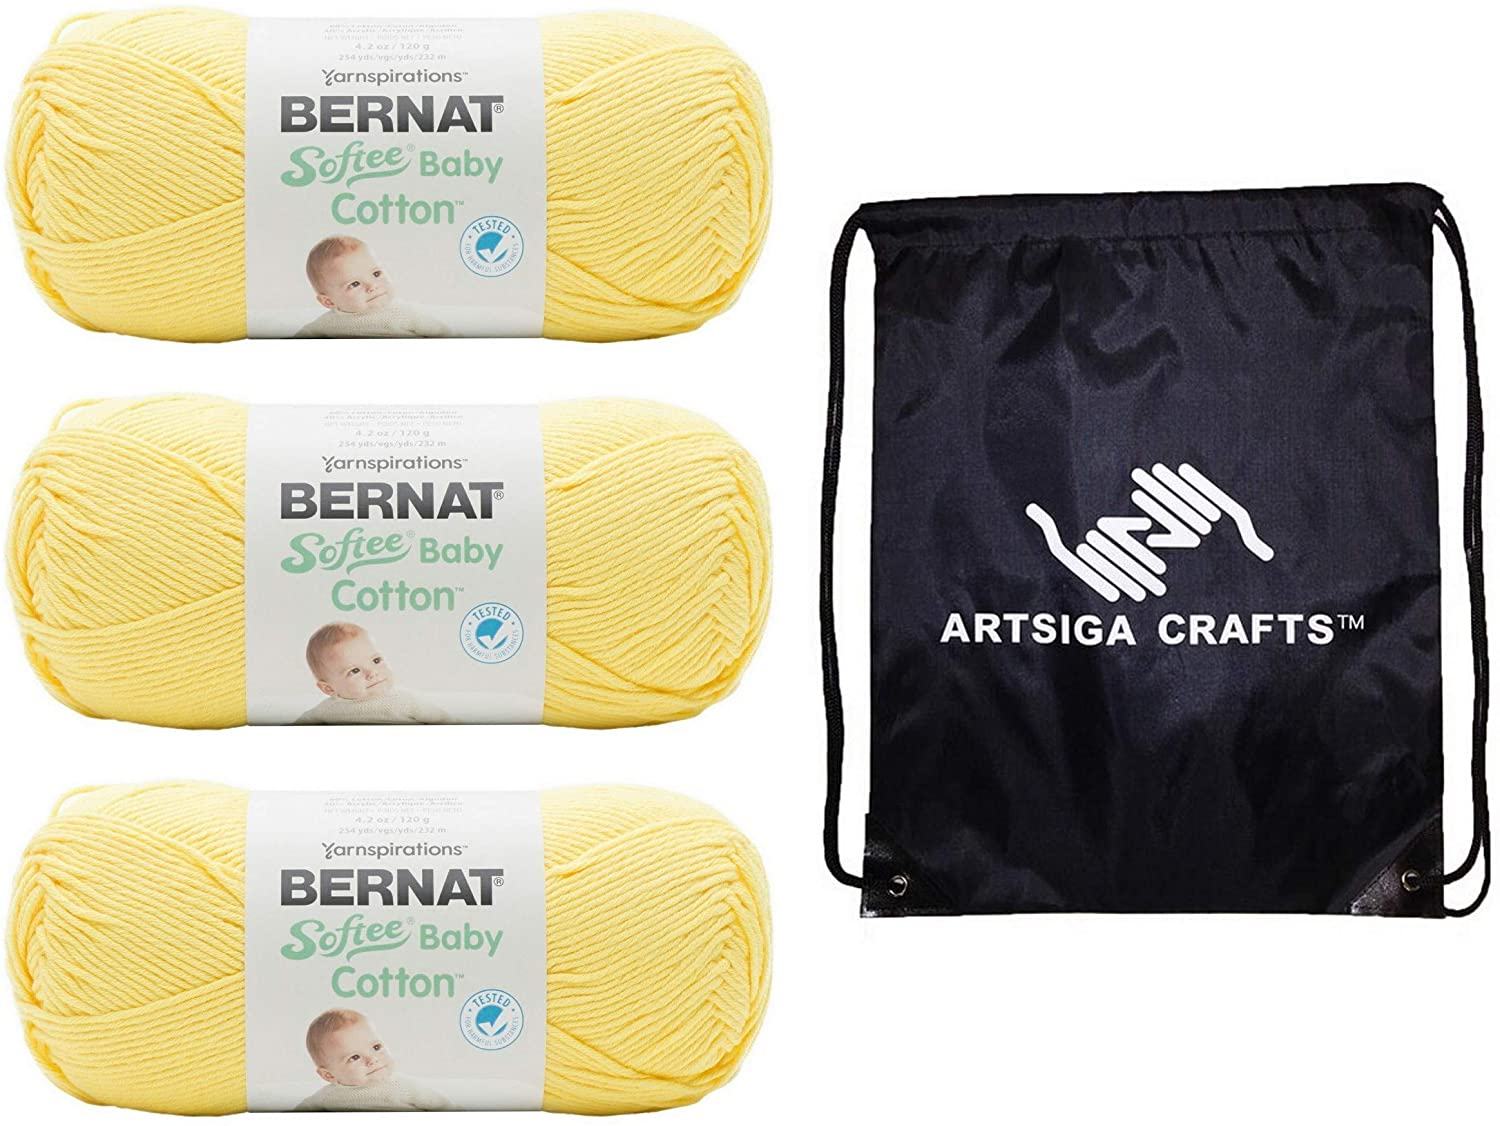 Bernat Knitting Yarn Softee Baby Cotton Duckling 3-Skein Factory Pack (Same Dyelot) 166052-52007 Bundle with 1 Artsiga Crafts Project Bag